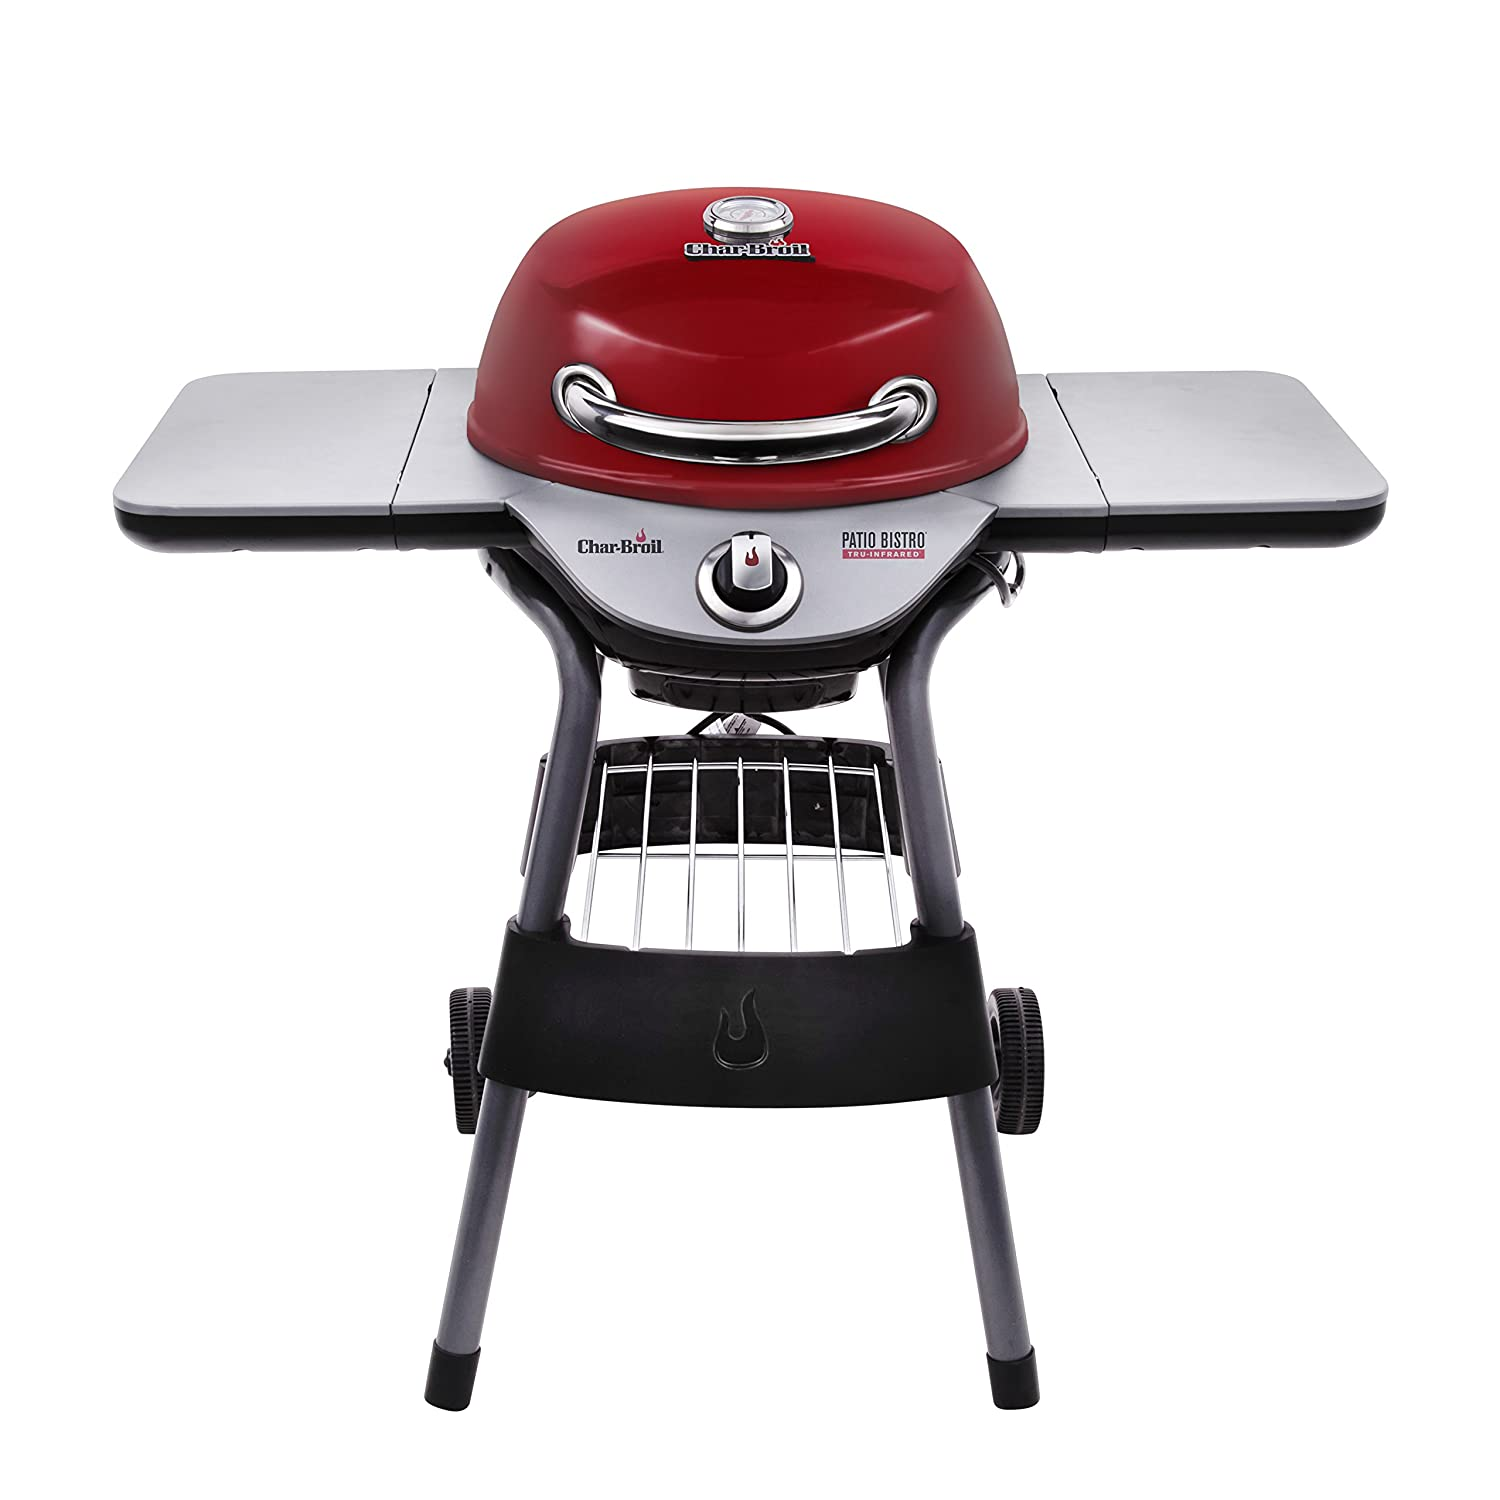 infrared tru broil patio amazon lawn grill red ca dp bistro electric char garden